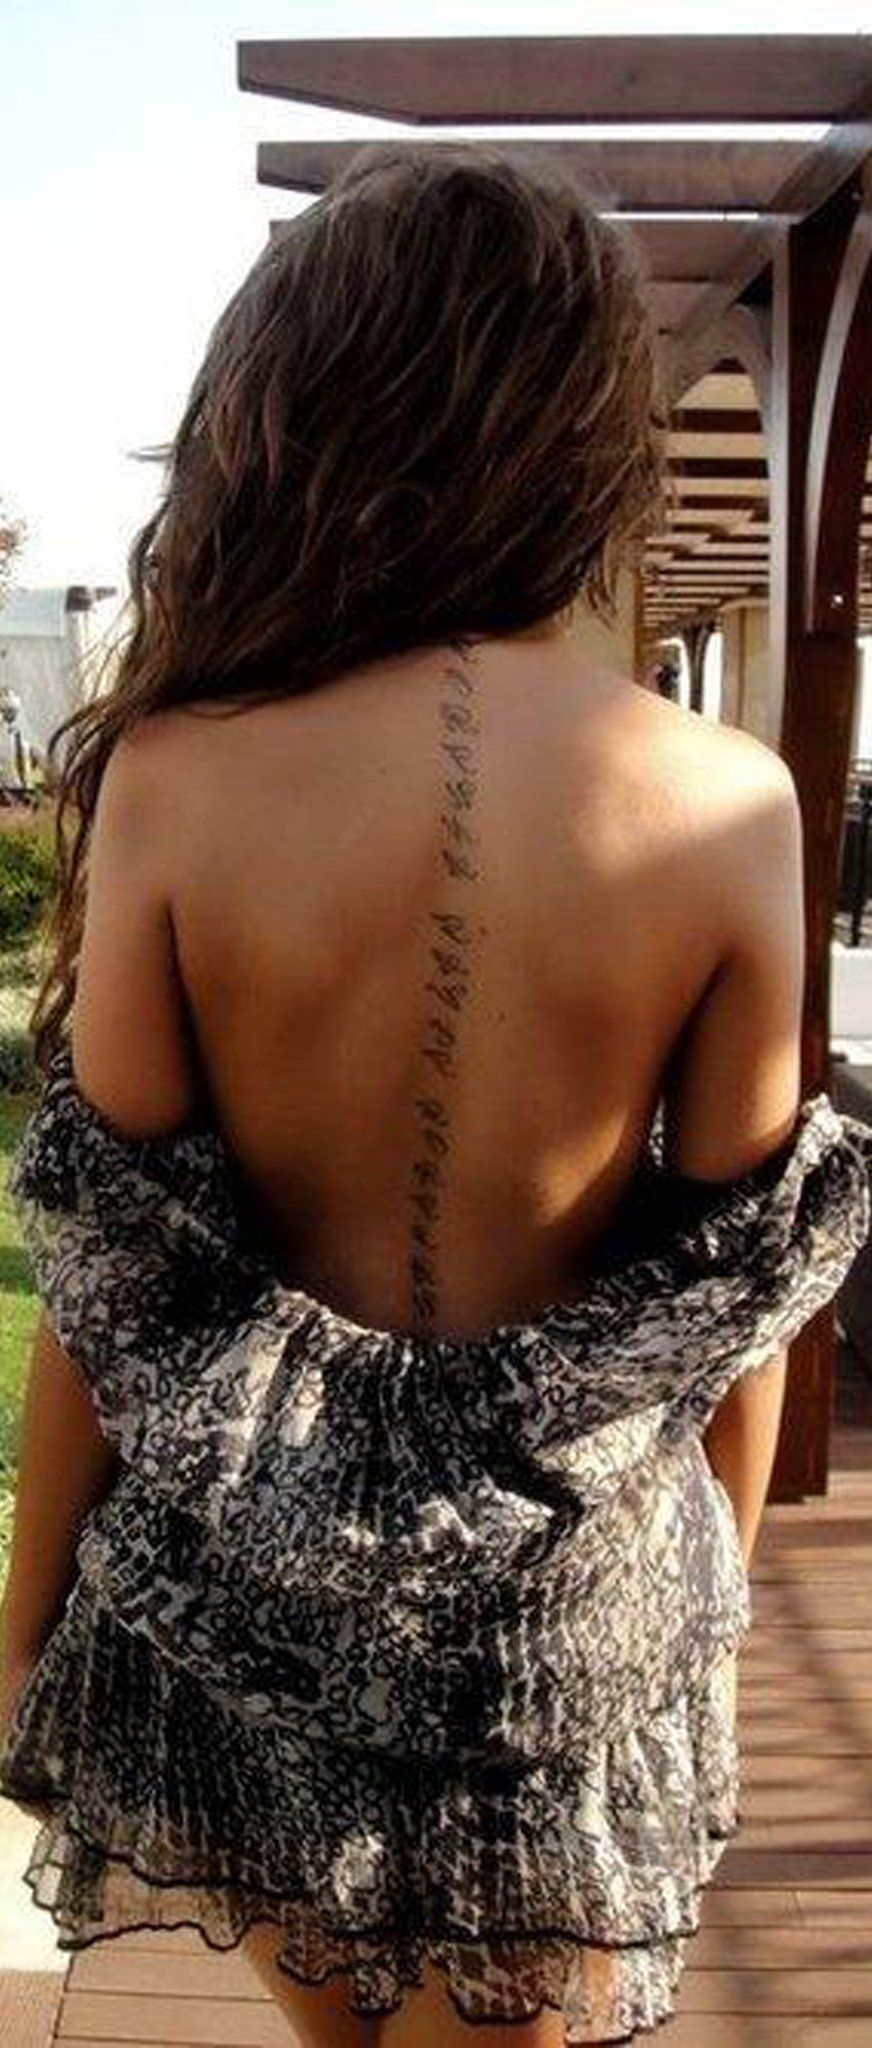 Script Quote Cursive Text Spine Tattoo Ideas for Women